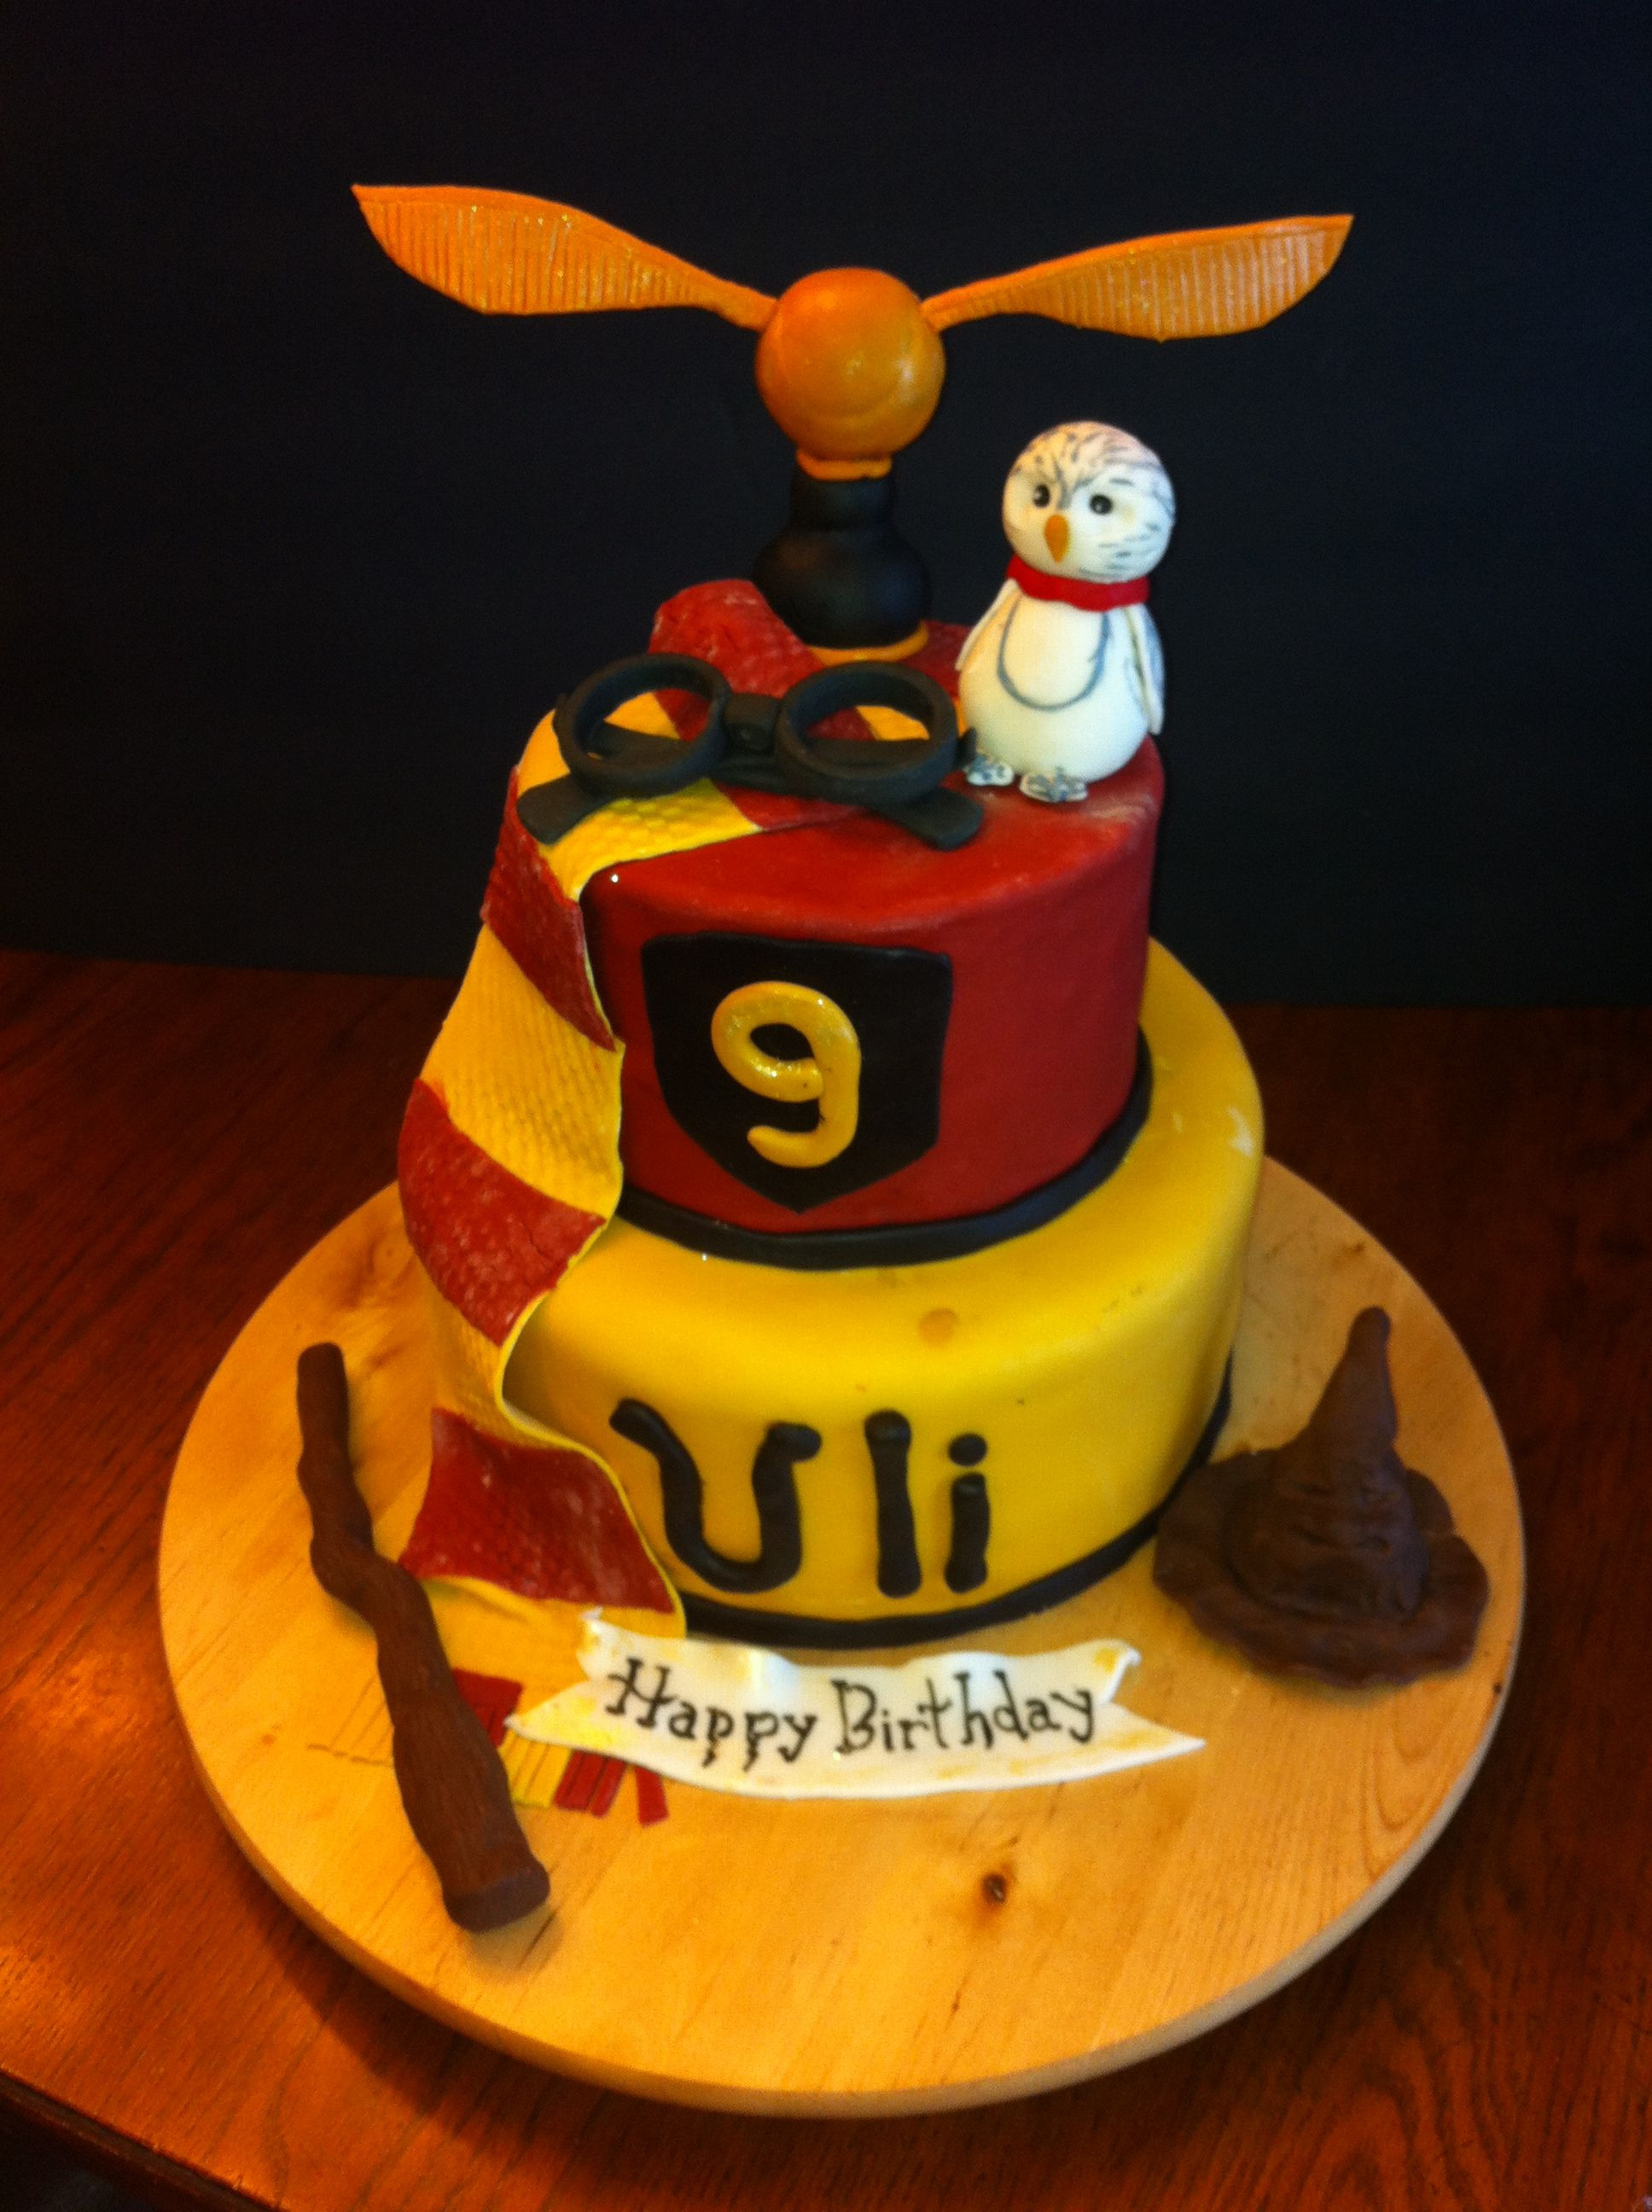 I saw a harry potter cake on Cake Central and loved it